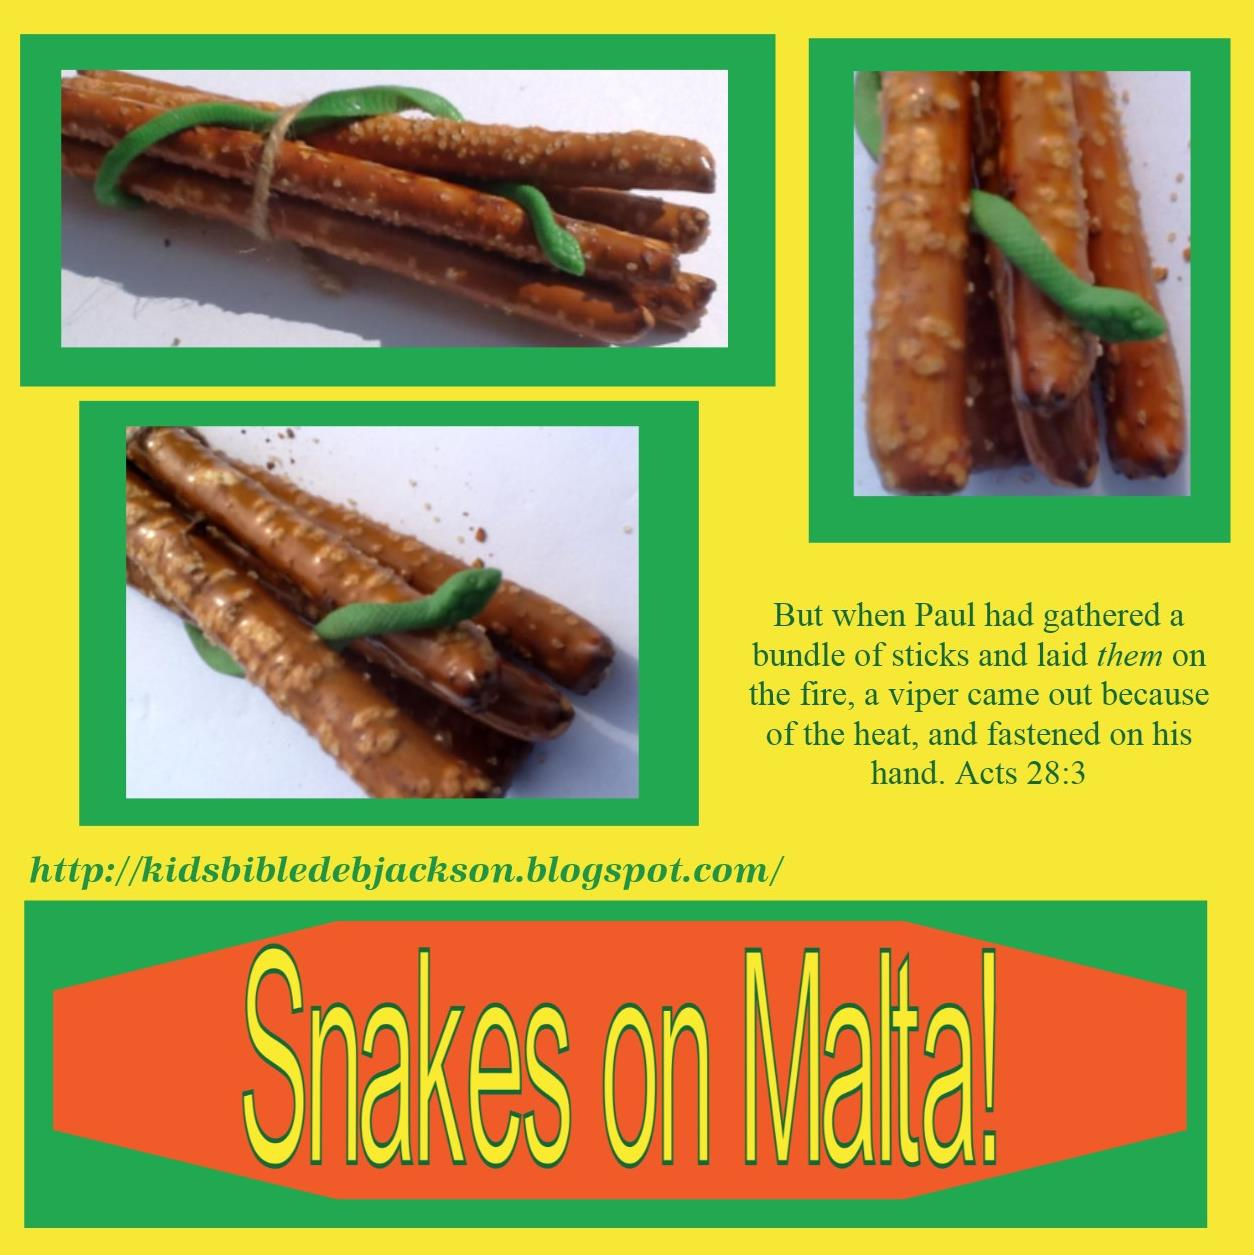 http://kidsbibledebjackson.blogspot.com/2013/03/paul-gets-bit-by-snake-on-malta.html